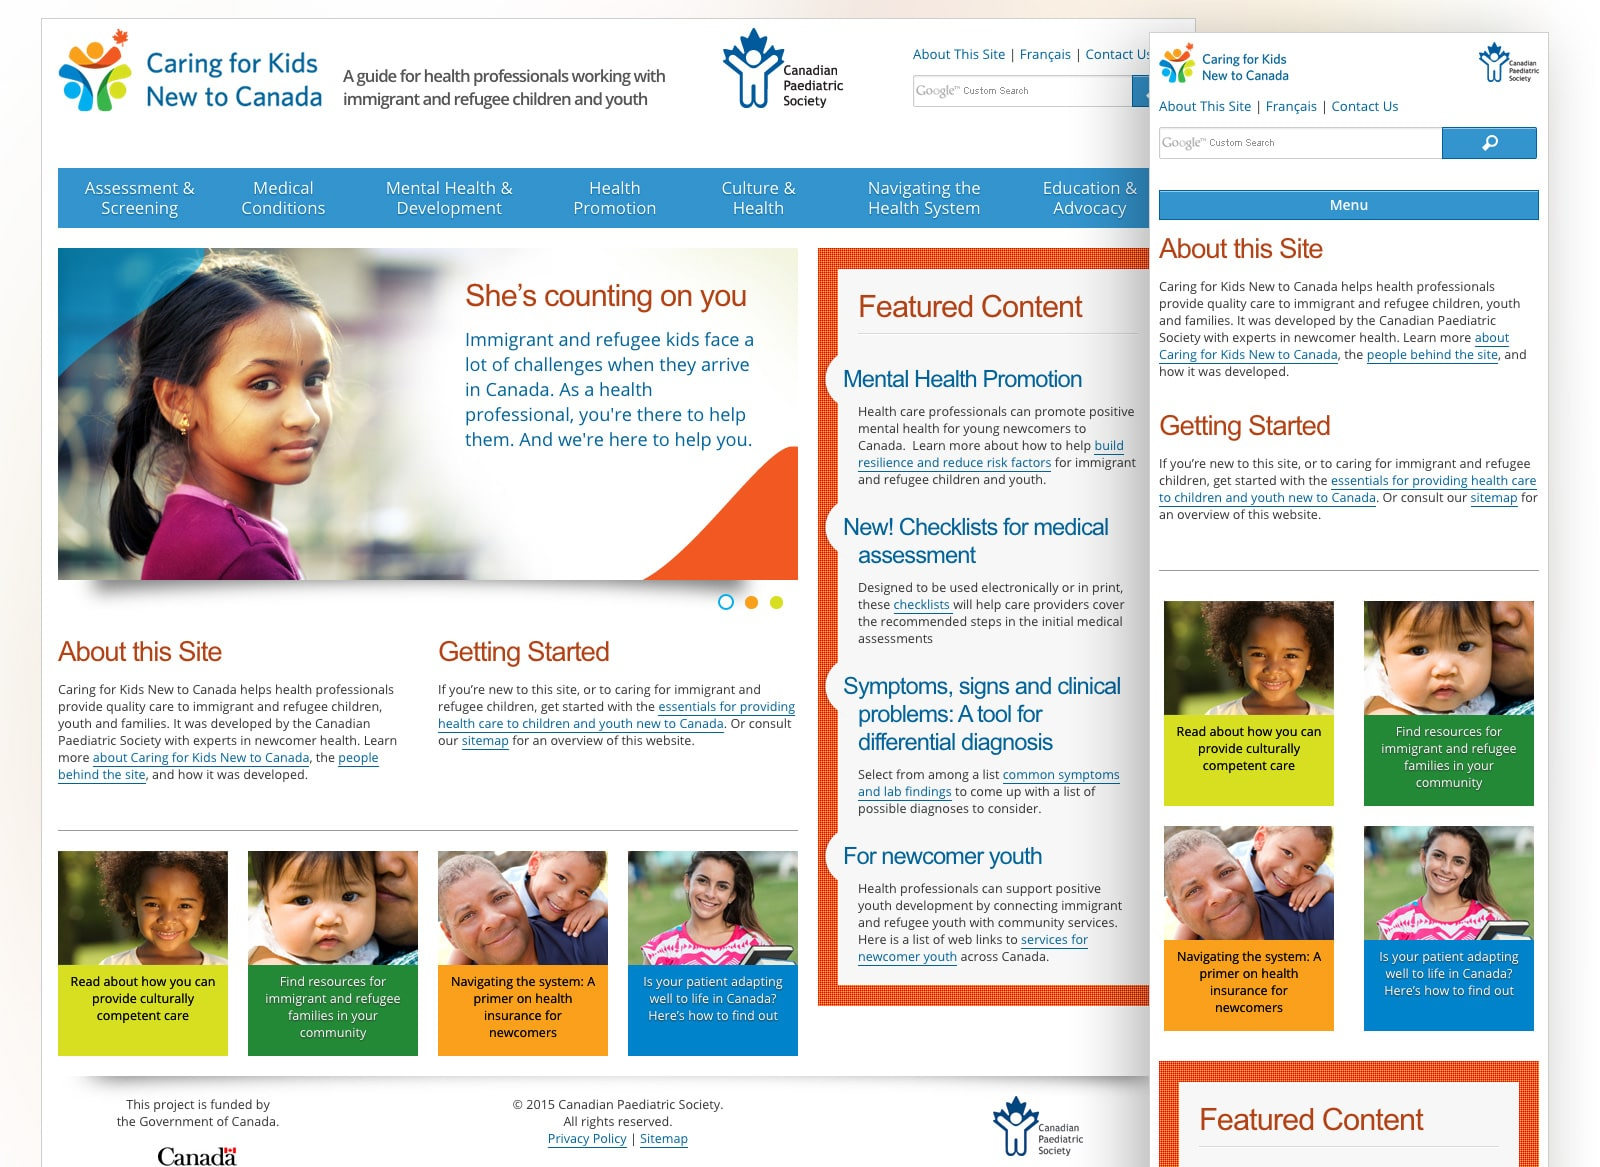 Screenshots of Caring for Kids New to Canada